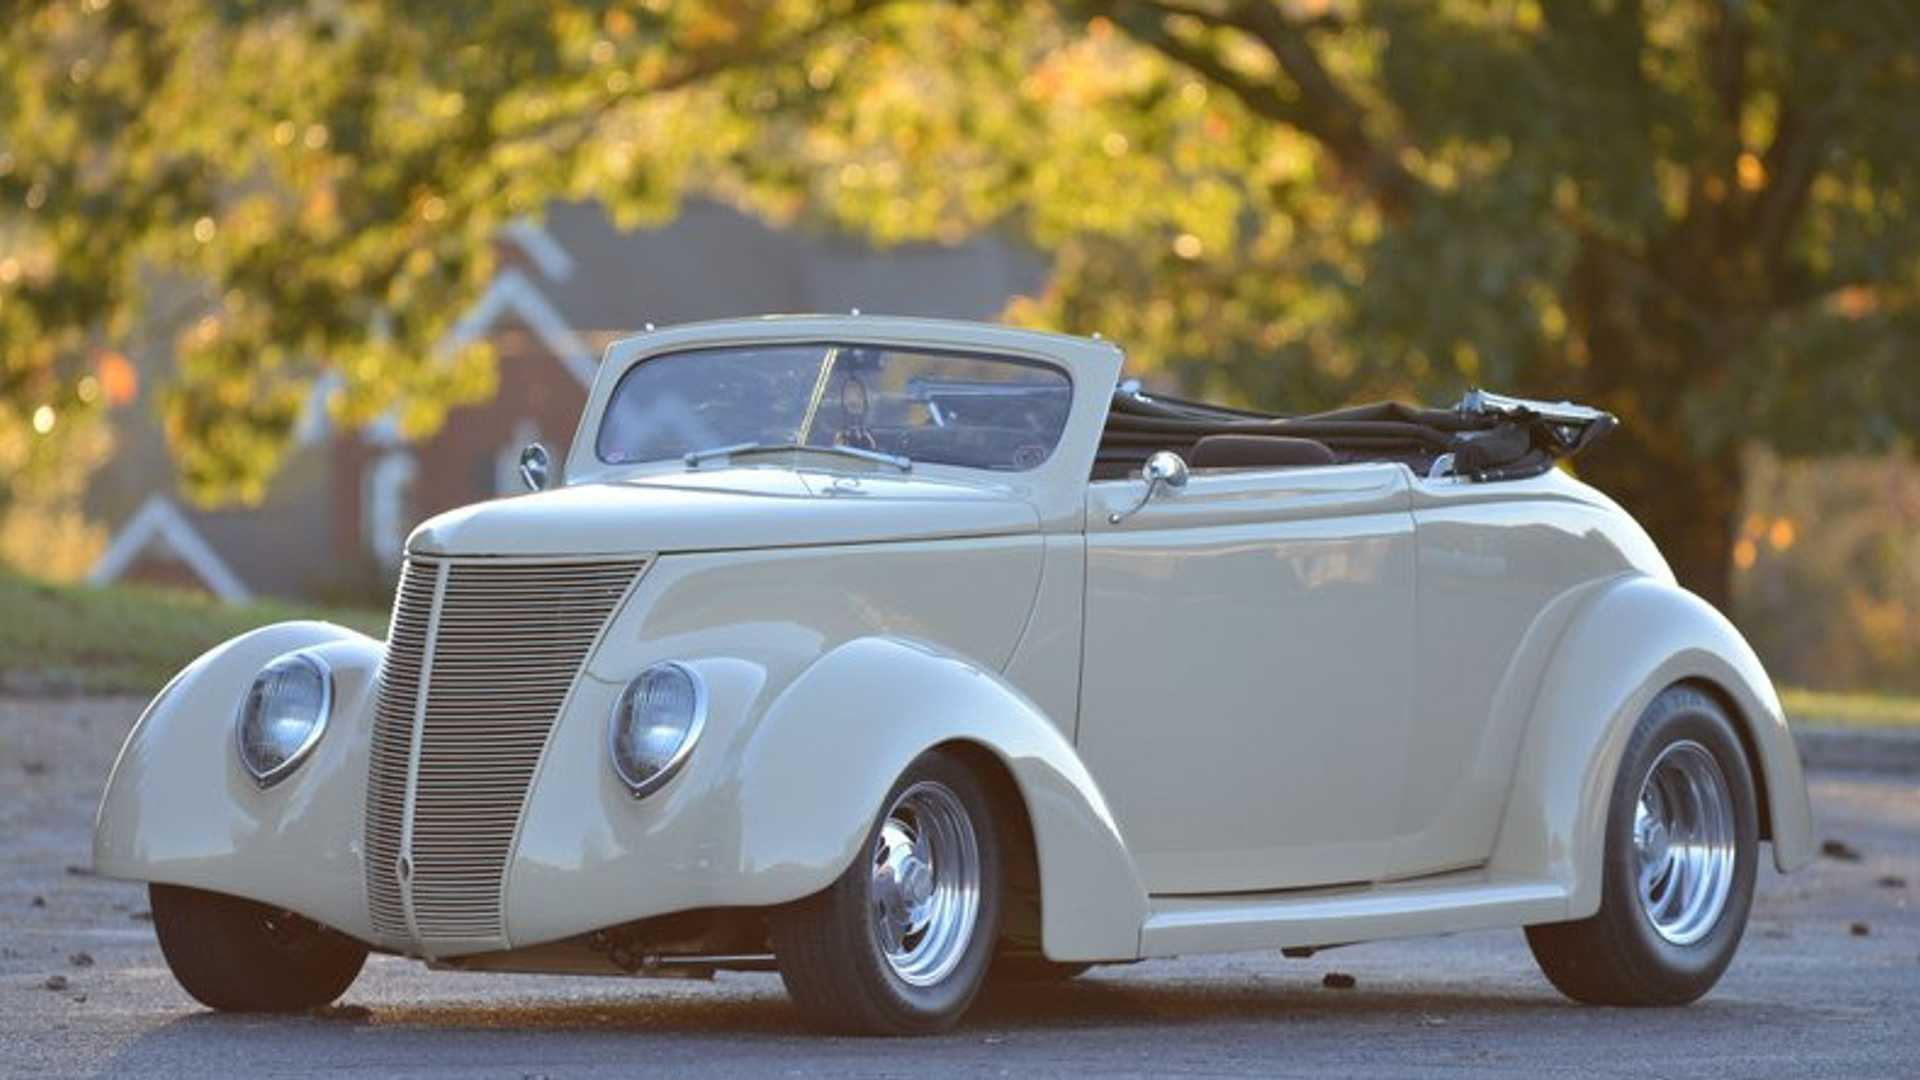 Rock On In A 1937 Ford Street Rod Convertible | Motorious